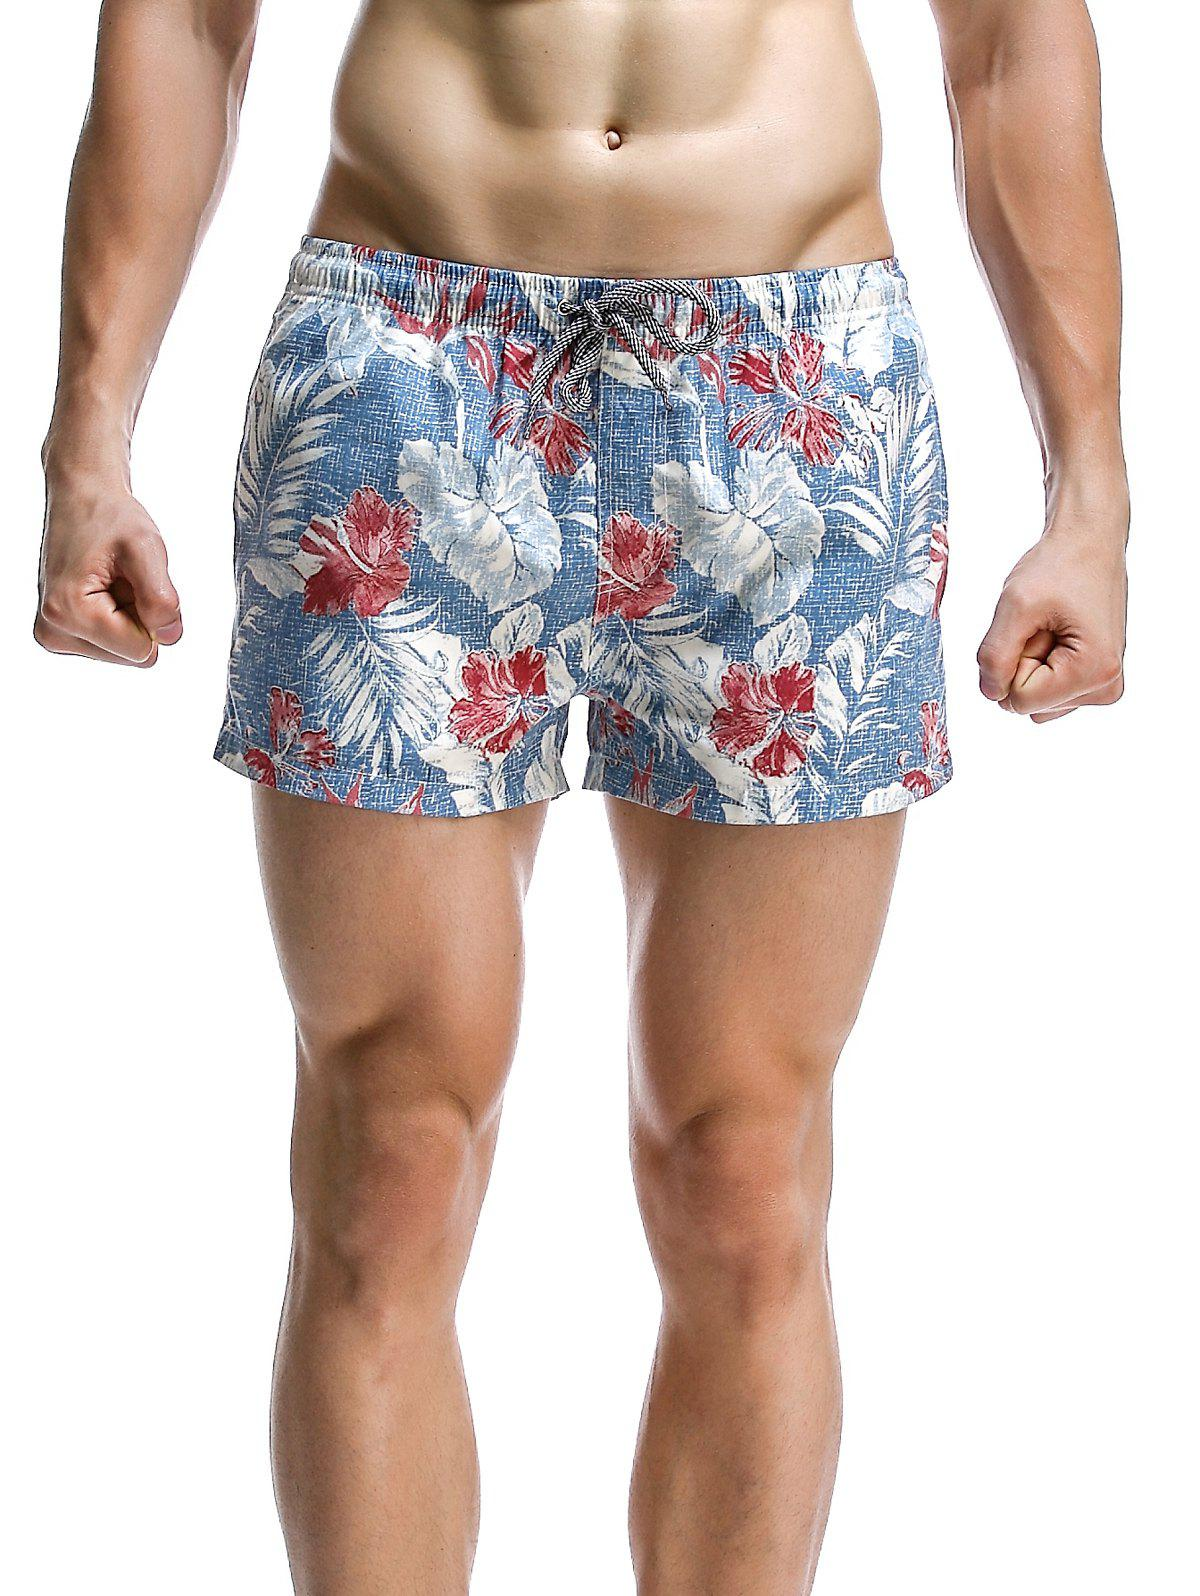 Men's Fashion Leaves Printed Boardshorts - LIGHT BLUE M